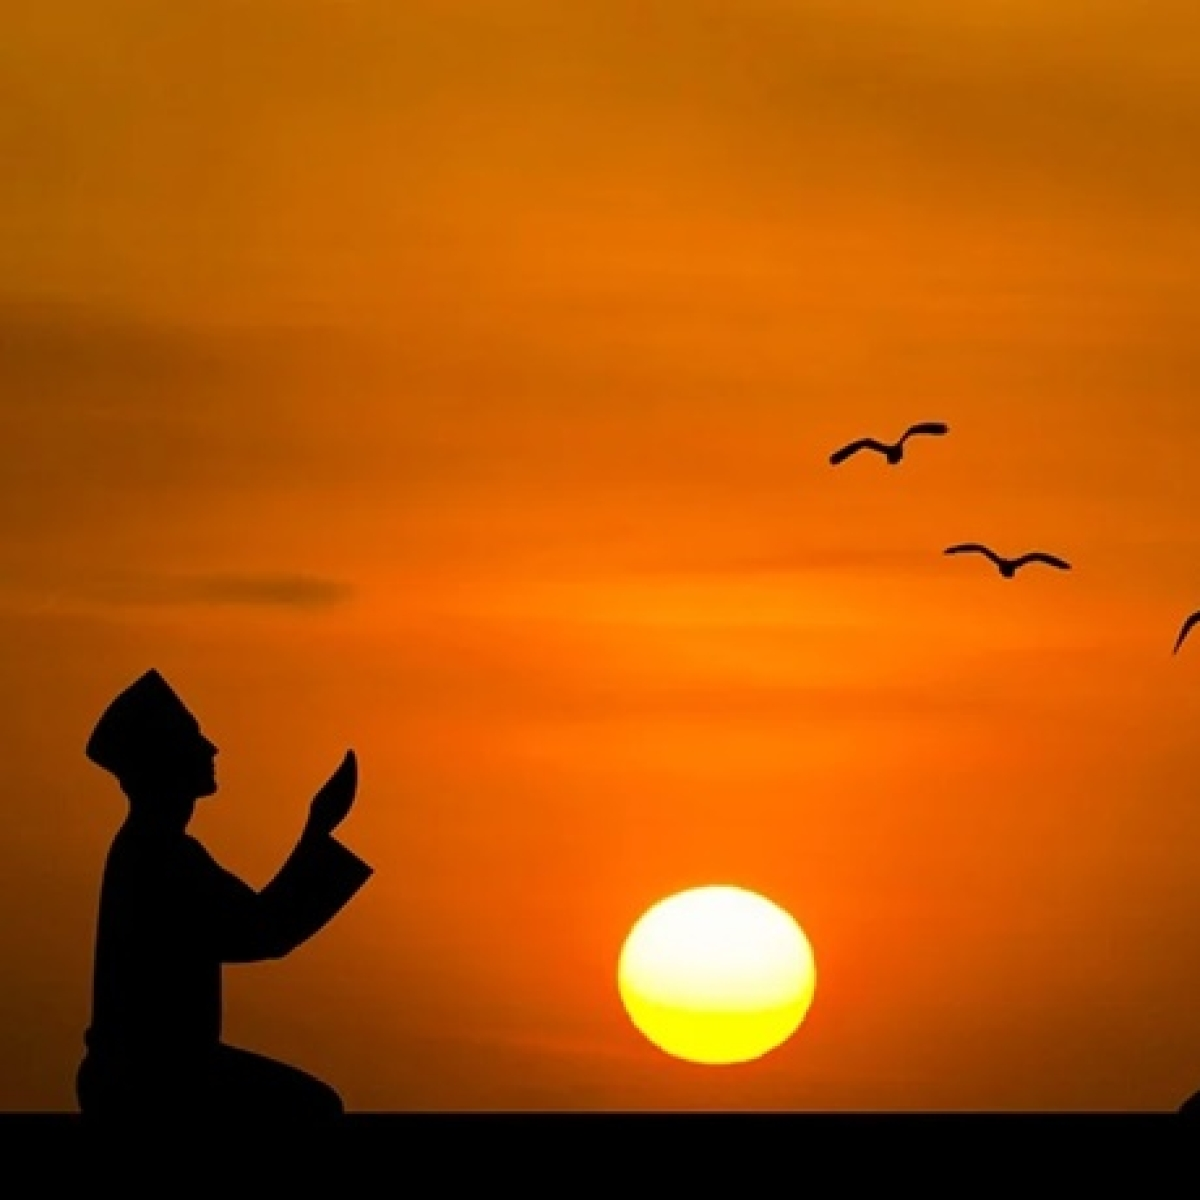 Guiding Light: The importance & significance of Eid ul-Fitr